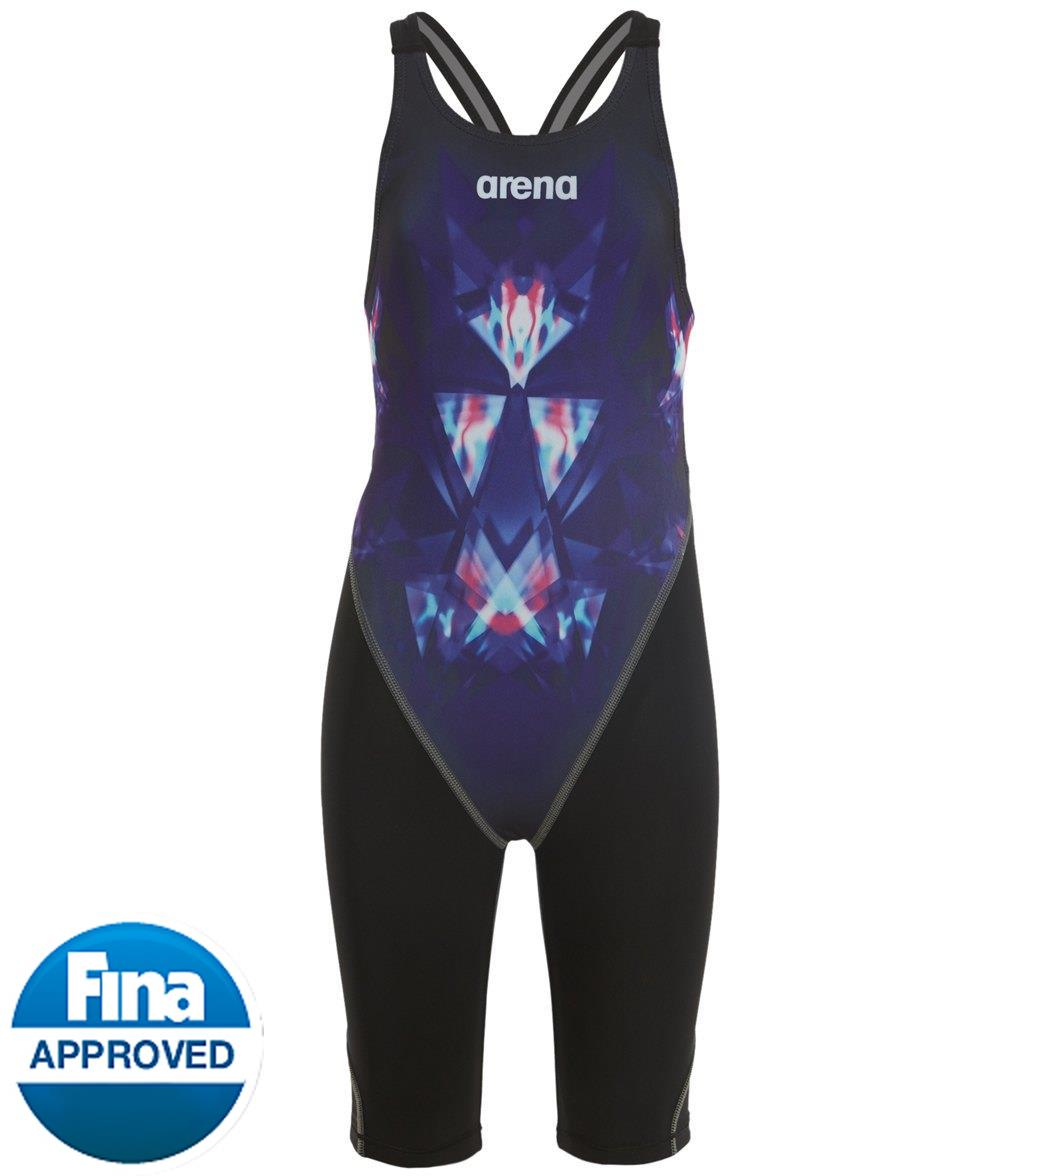 02c03f787c Arena Girls' Powerskin Luckystar ST 2.0 Full Body Open Back Junior Limited  Edition at SwimOutlet.com - Free Shipping